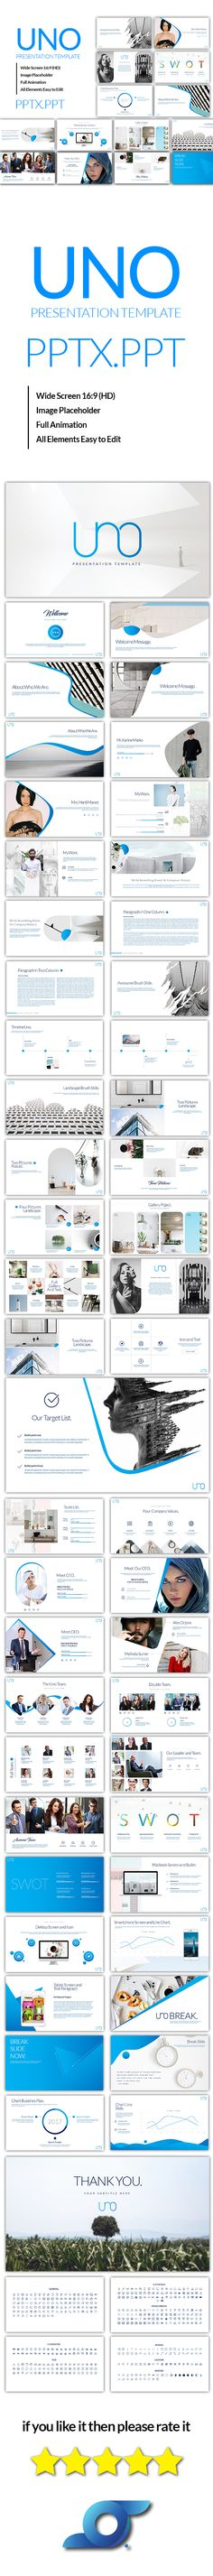 Uno Powerpoint Template